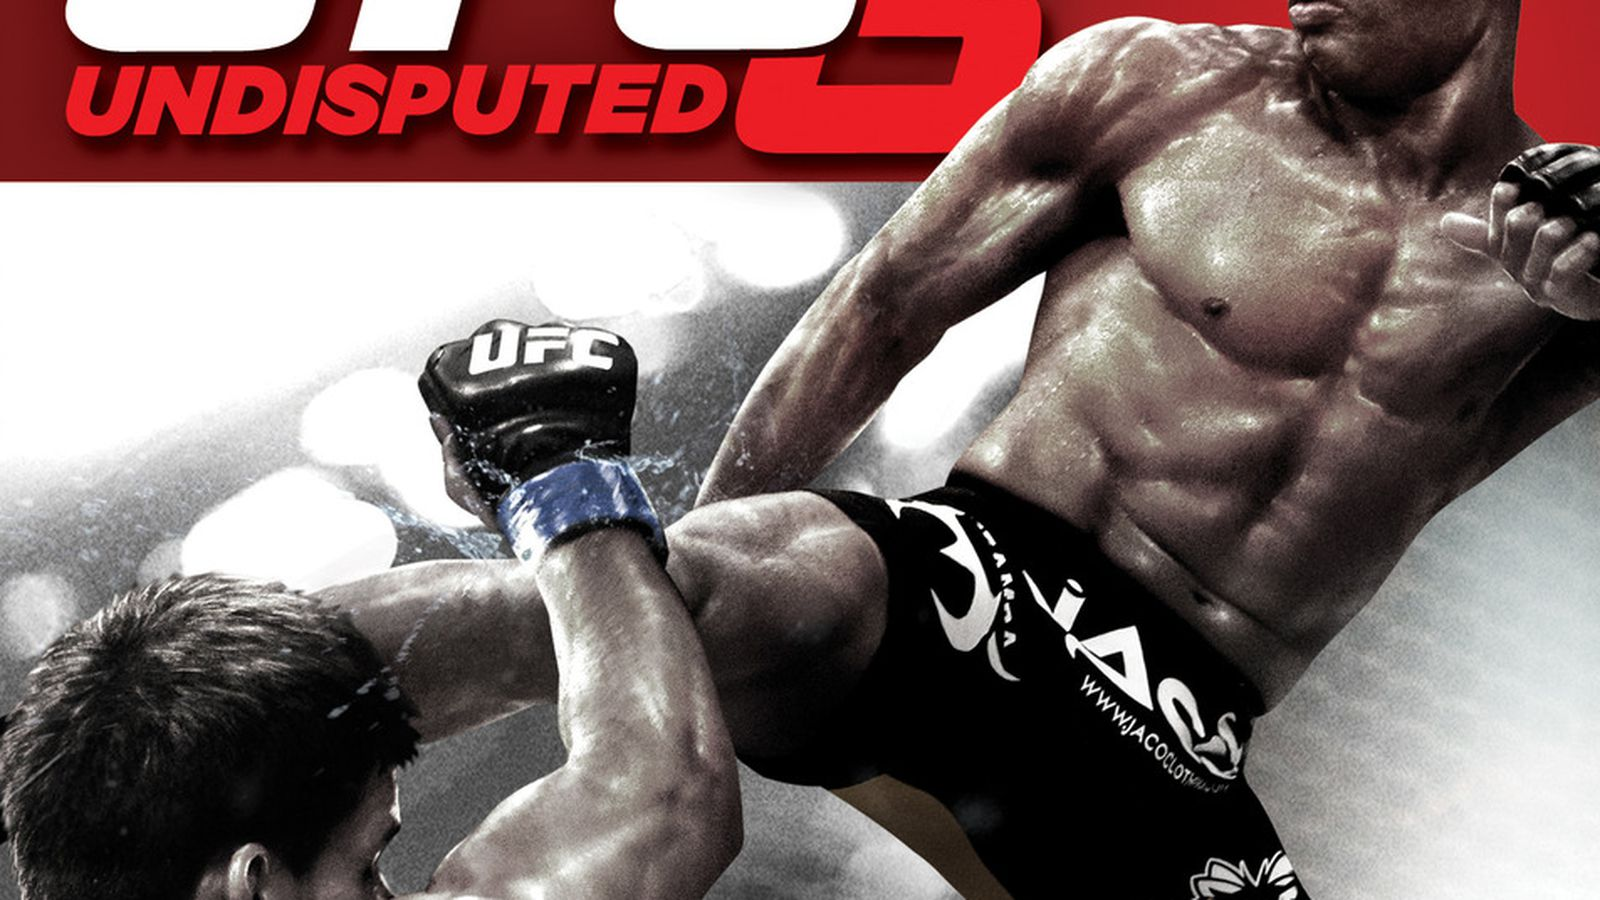 UFC Undisputed 3 playable demo featuring Jon Jones vs ...